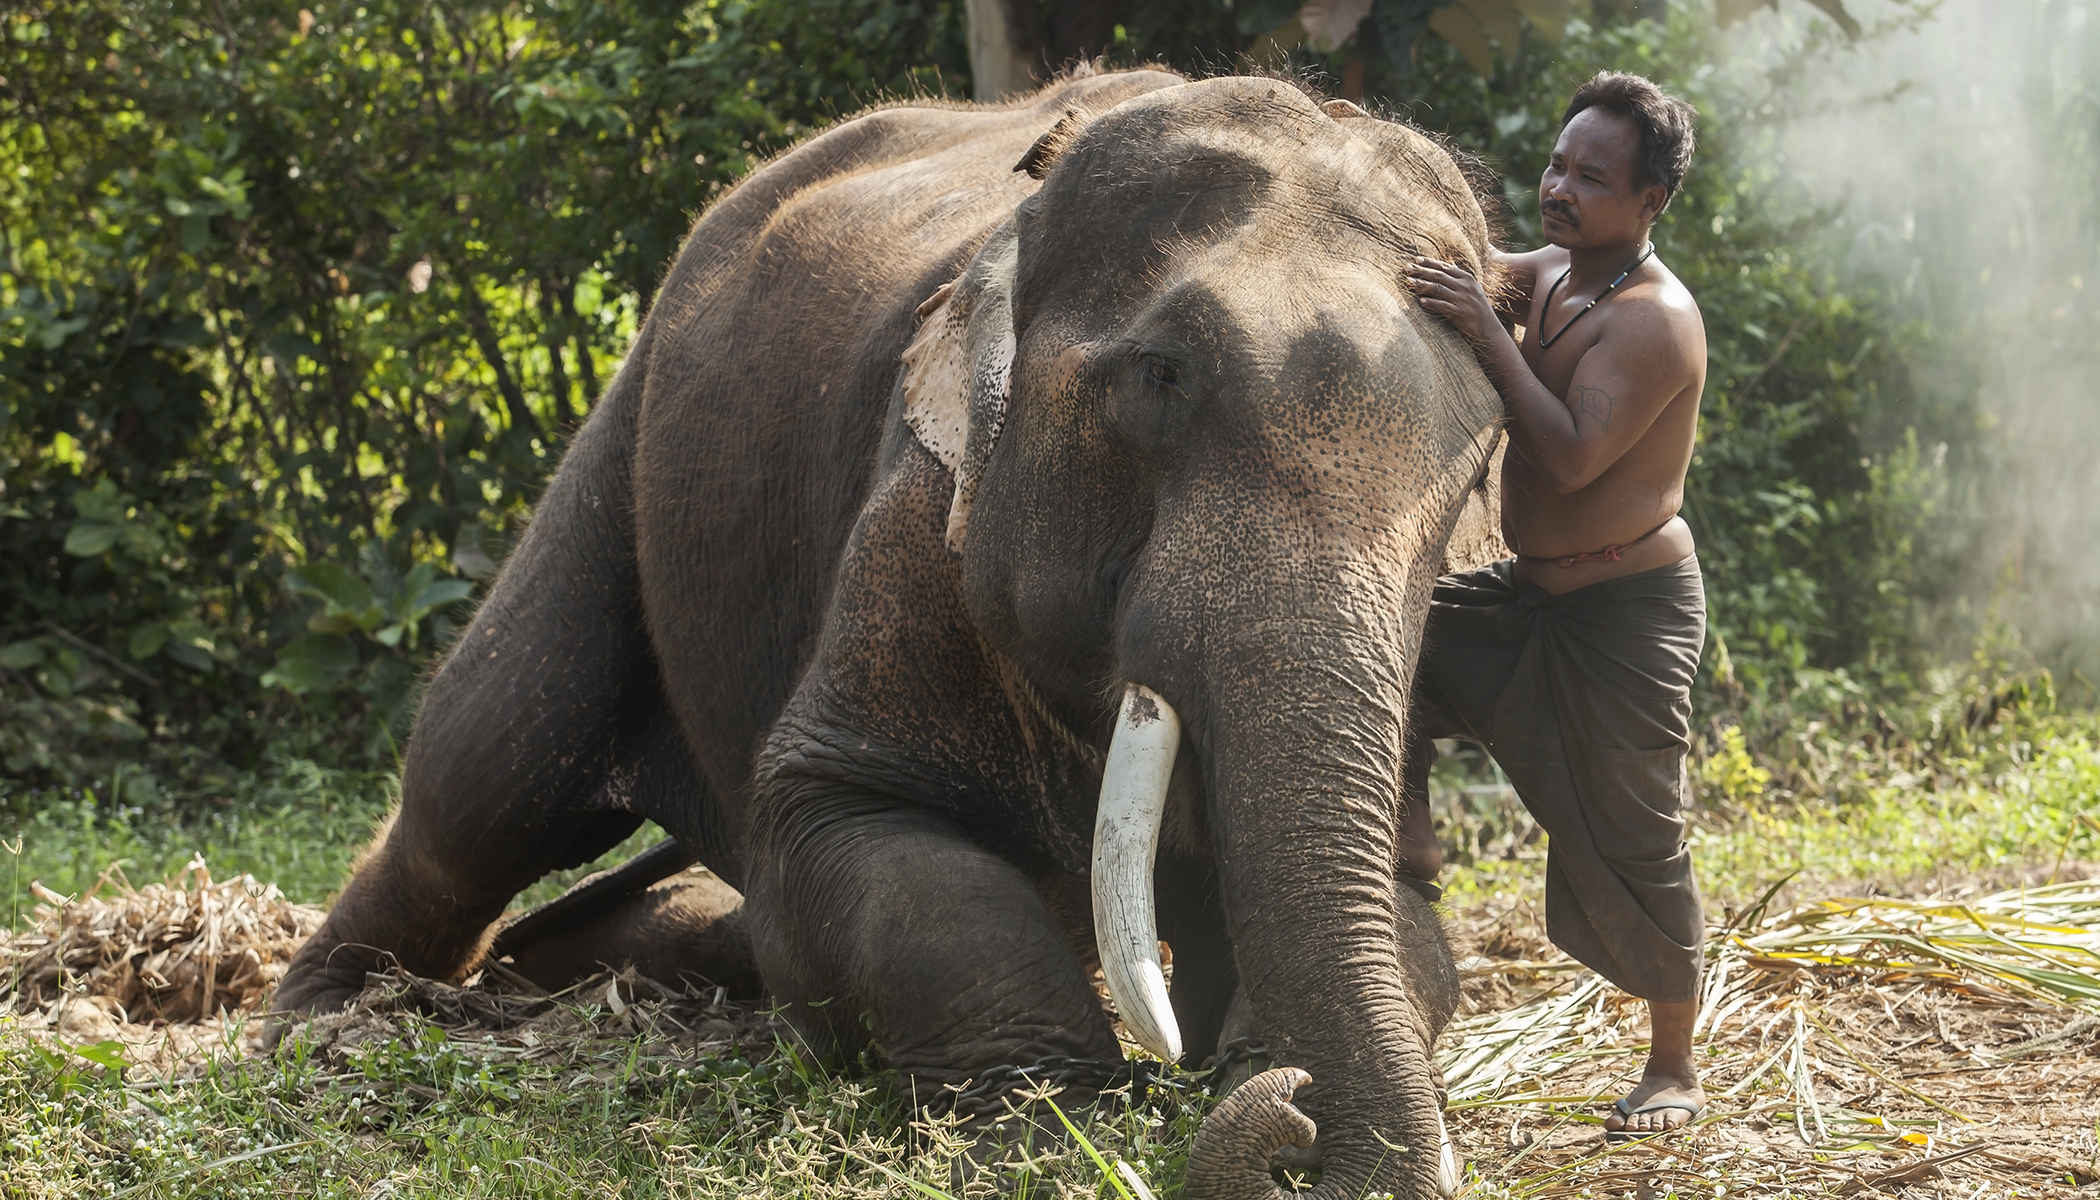 Elephant Rushes to the Aid of His Caretaker Who Was Getting 'Attacked'